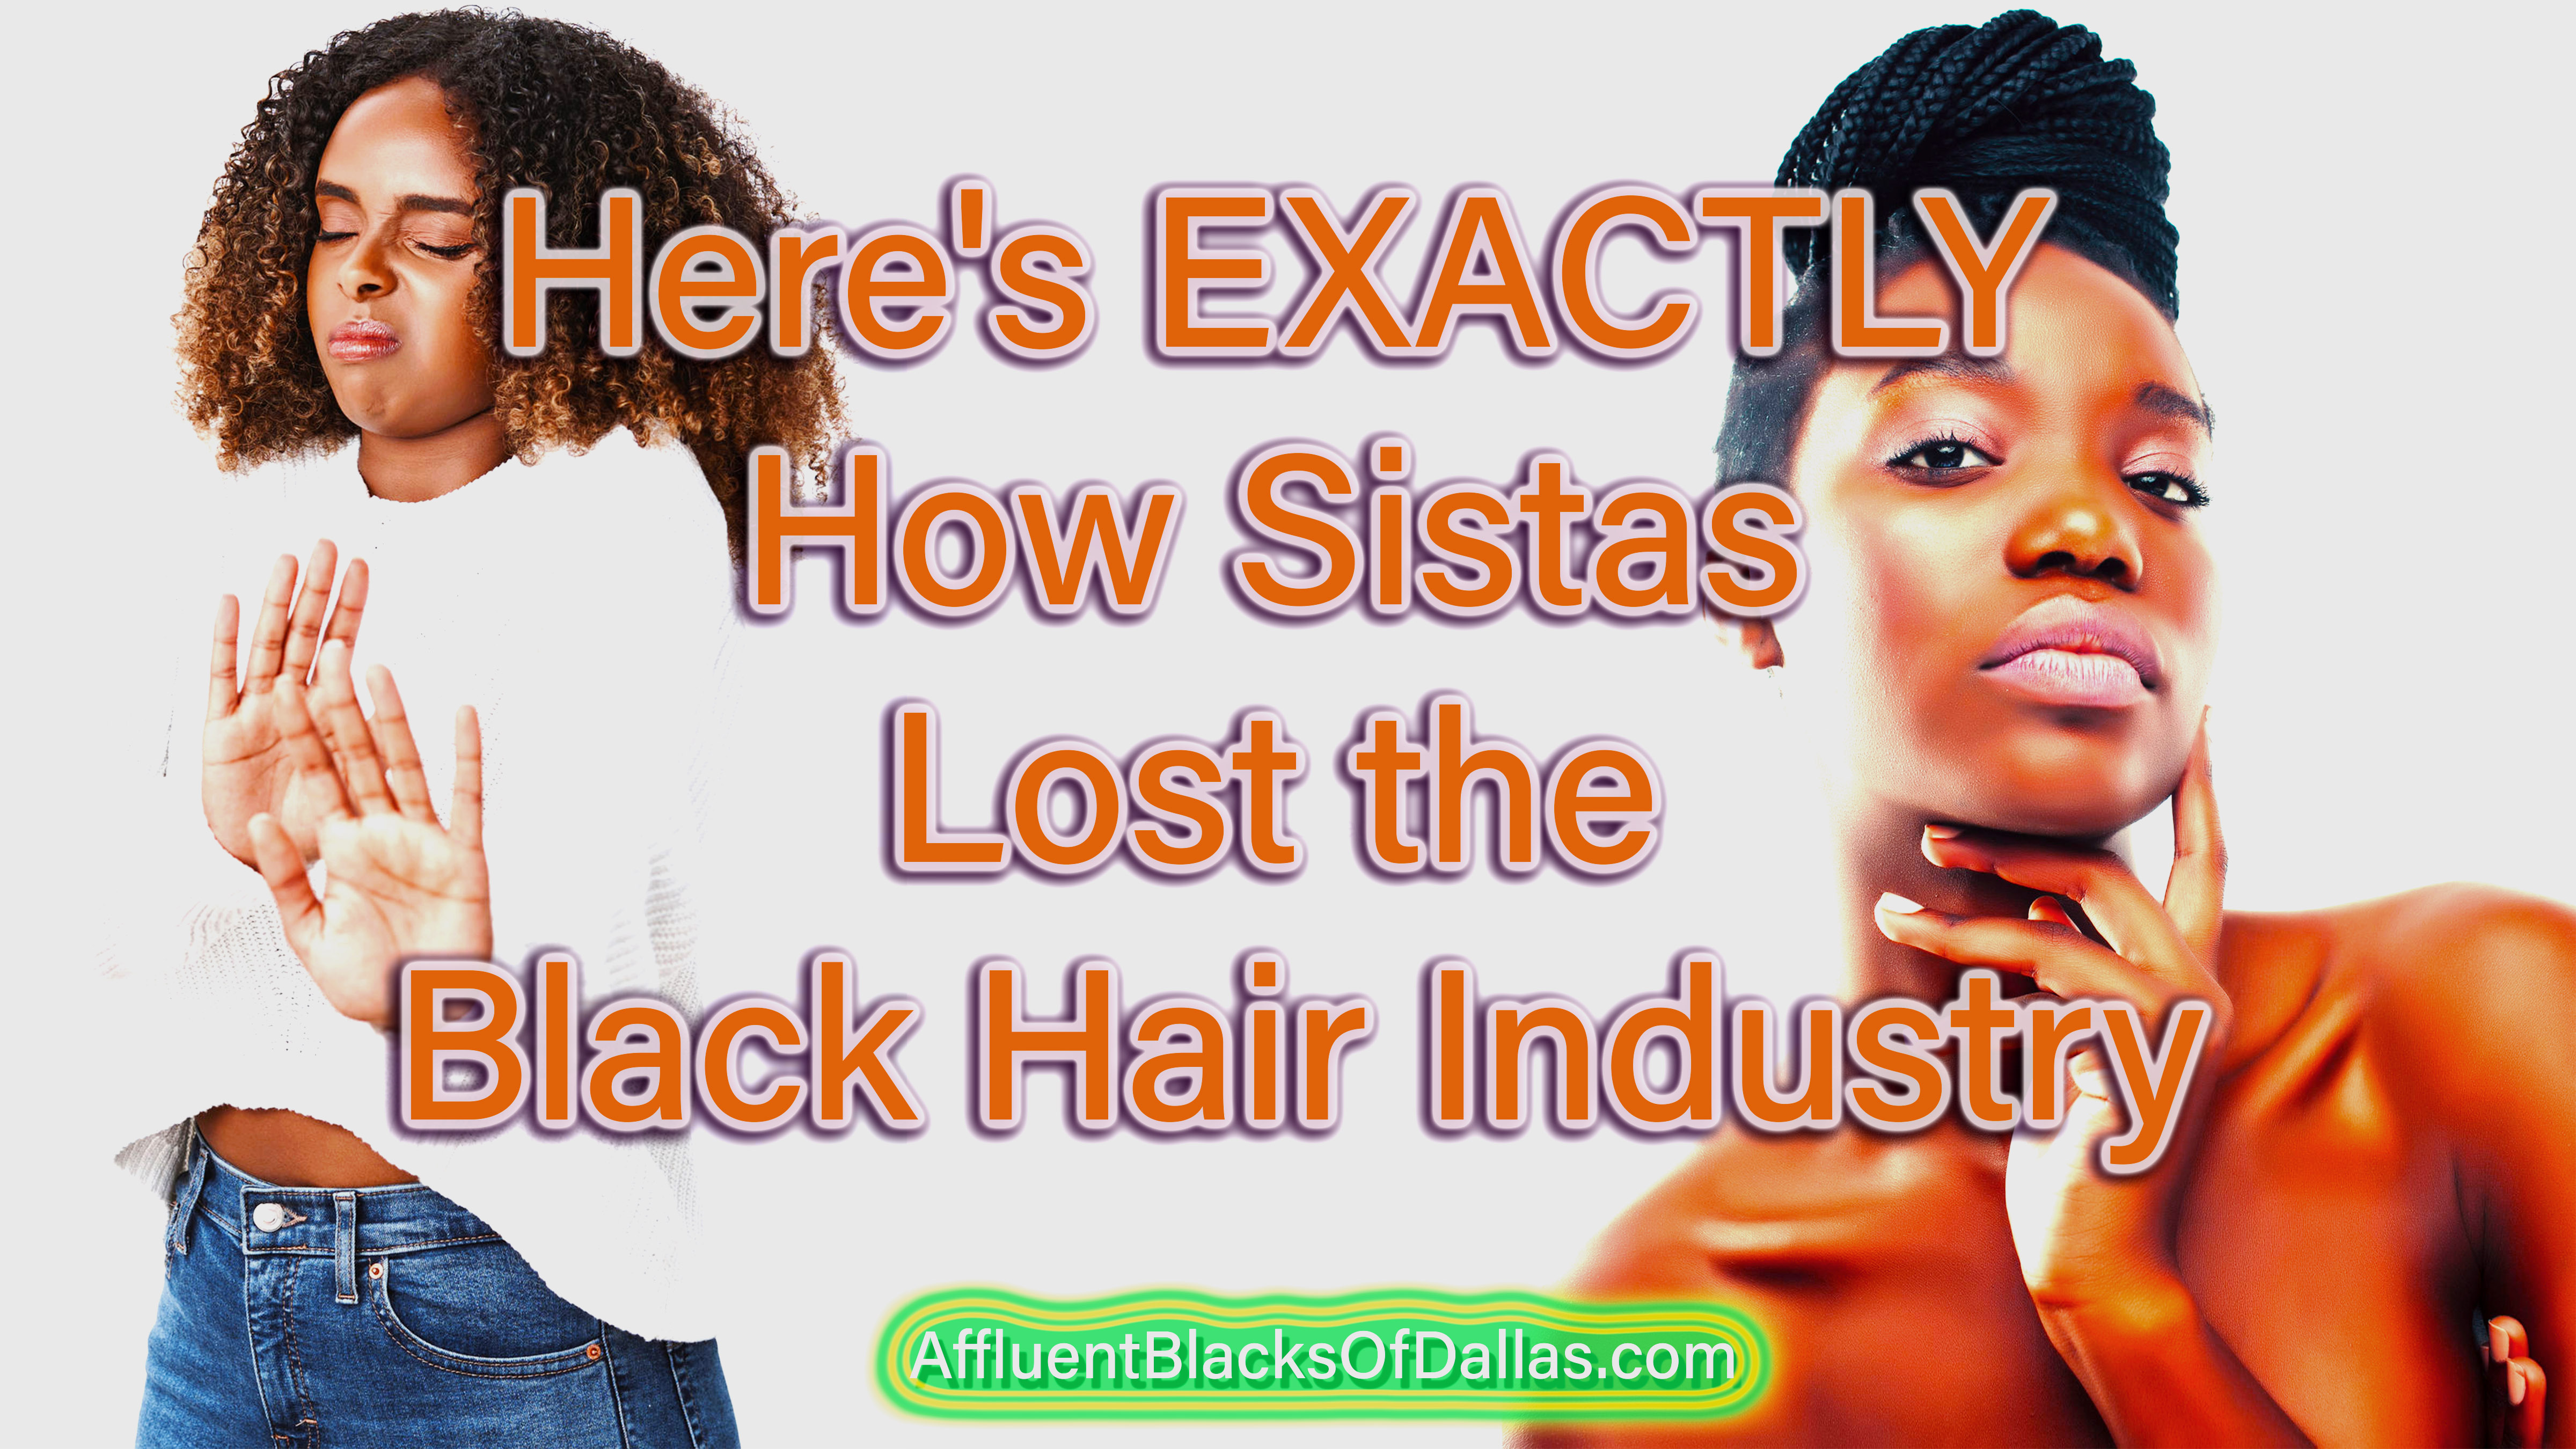 Here's EXACTLY How Sistas Lost the Black Hair and Beauty Care Industry